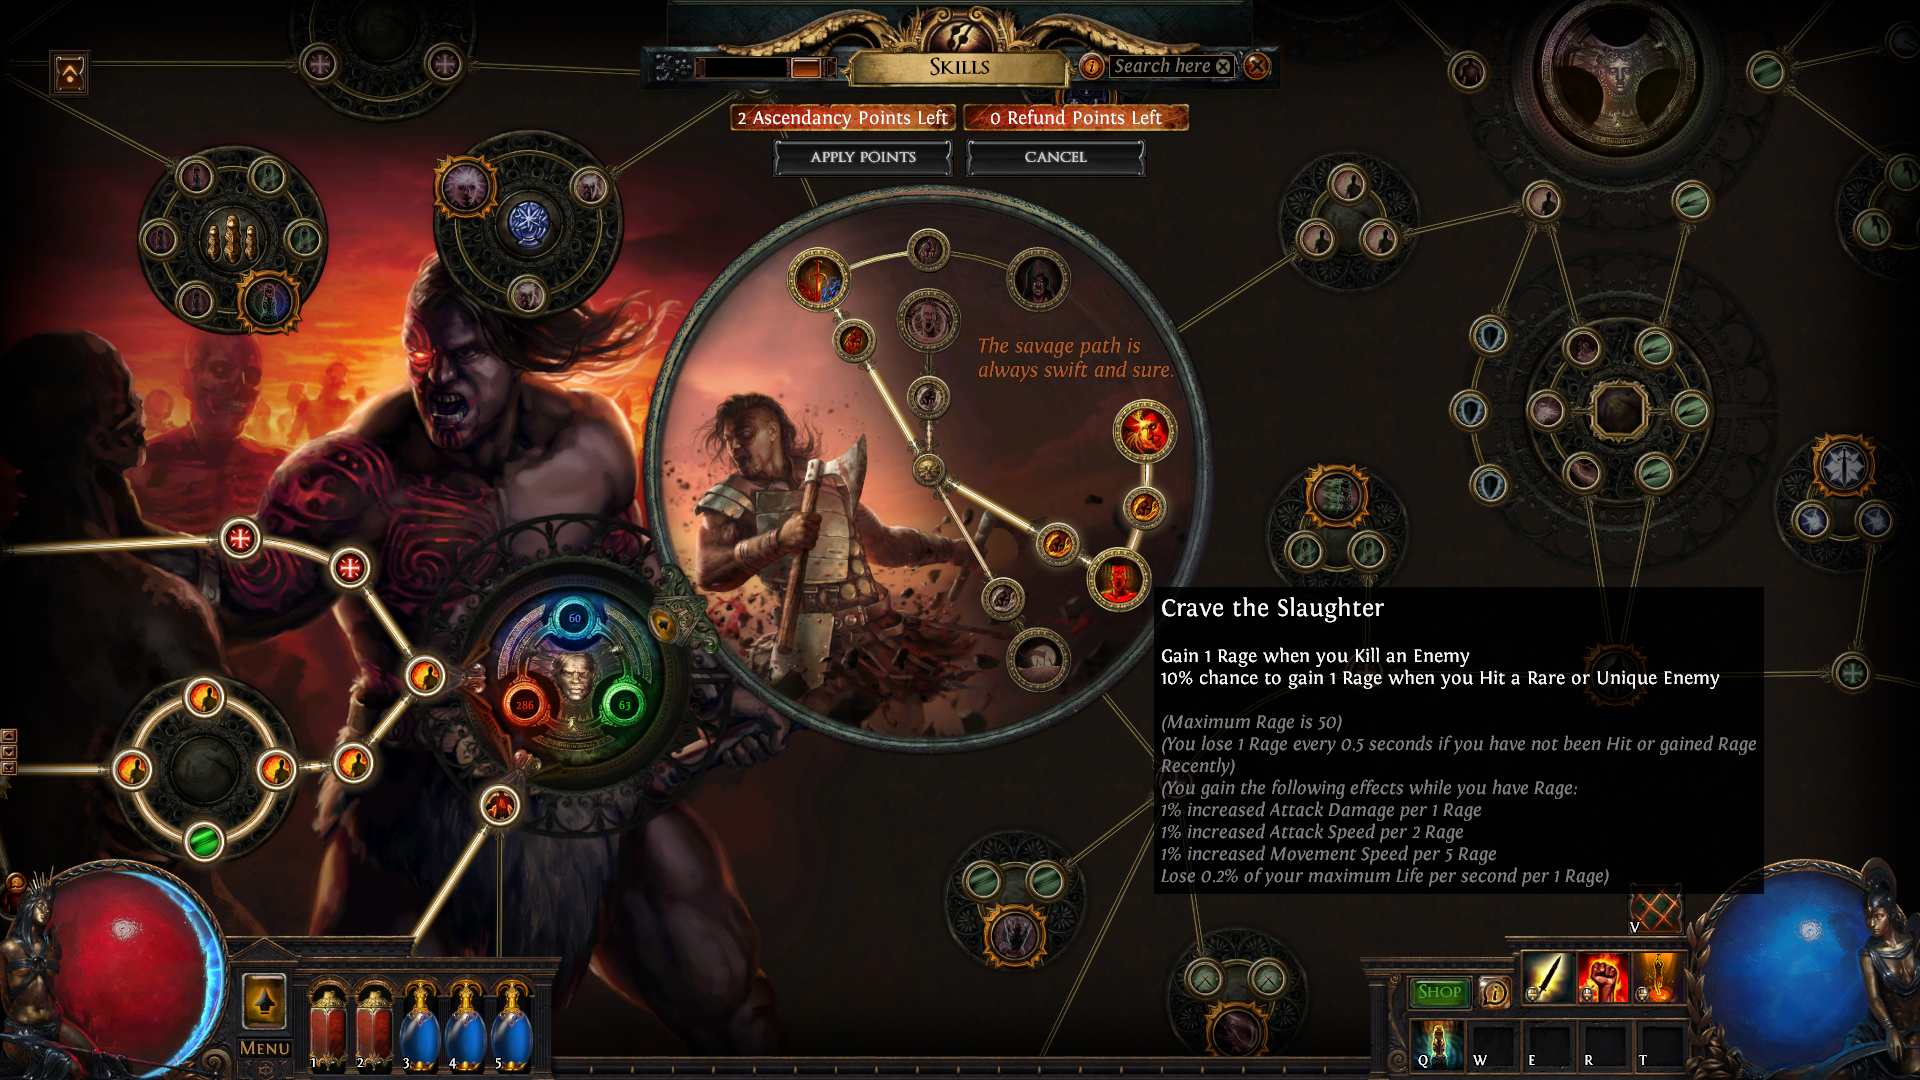 Path of Exile: Gotta catch 'em all in the new Bestiary League and